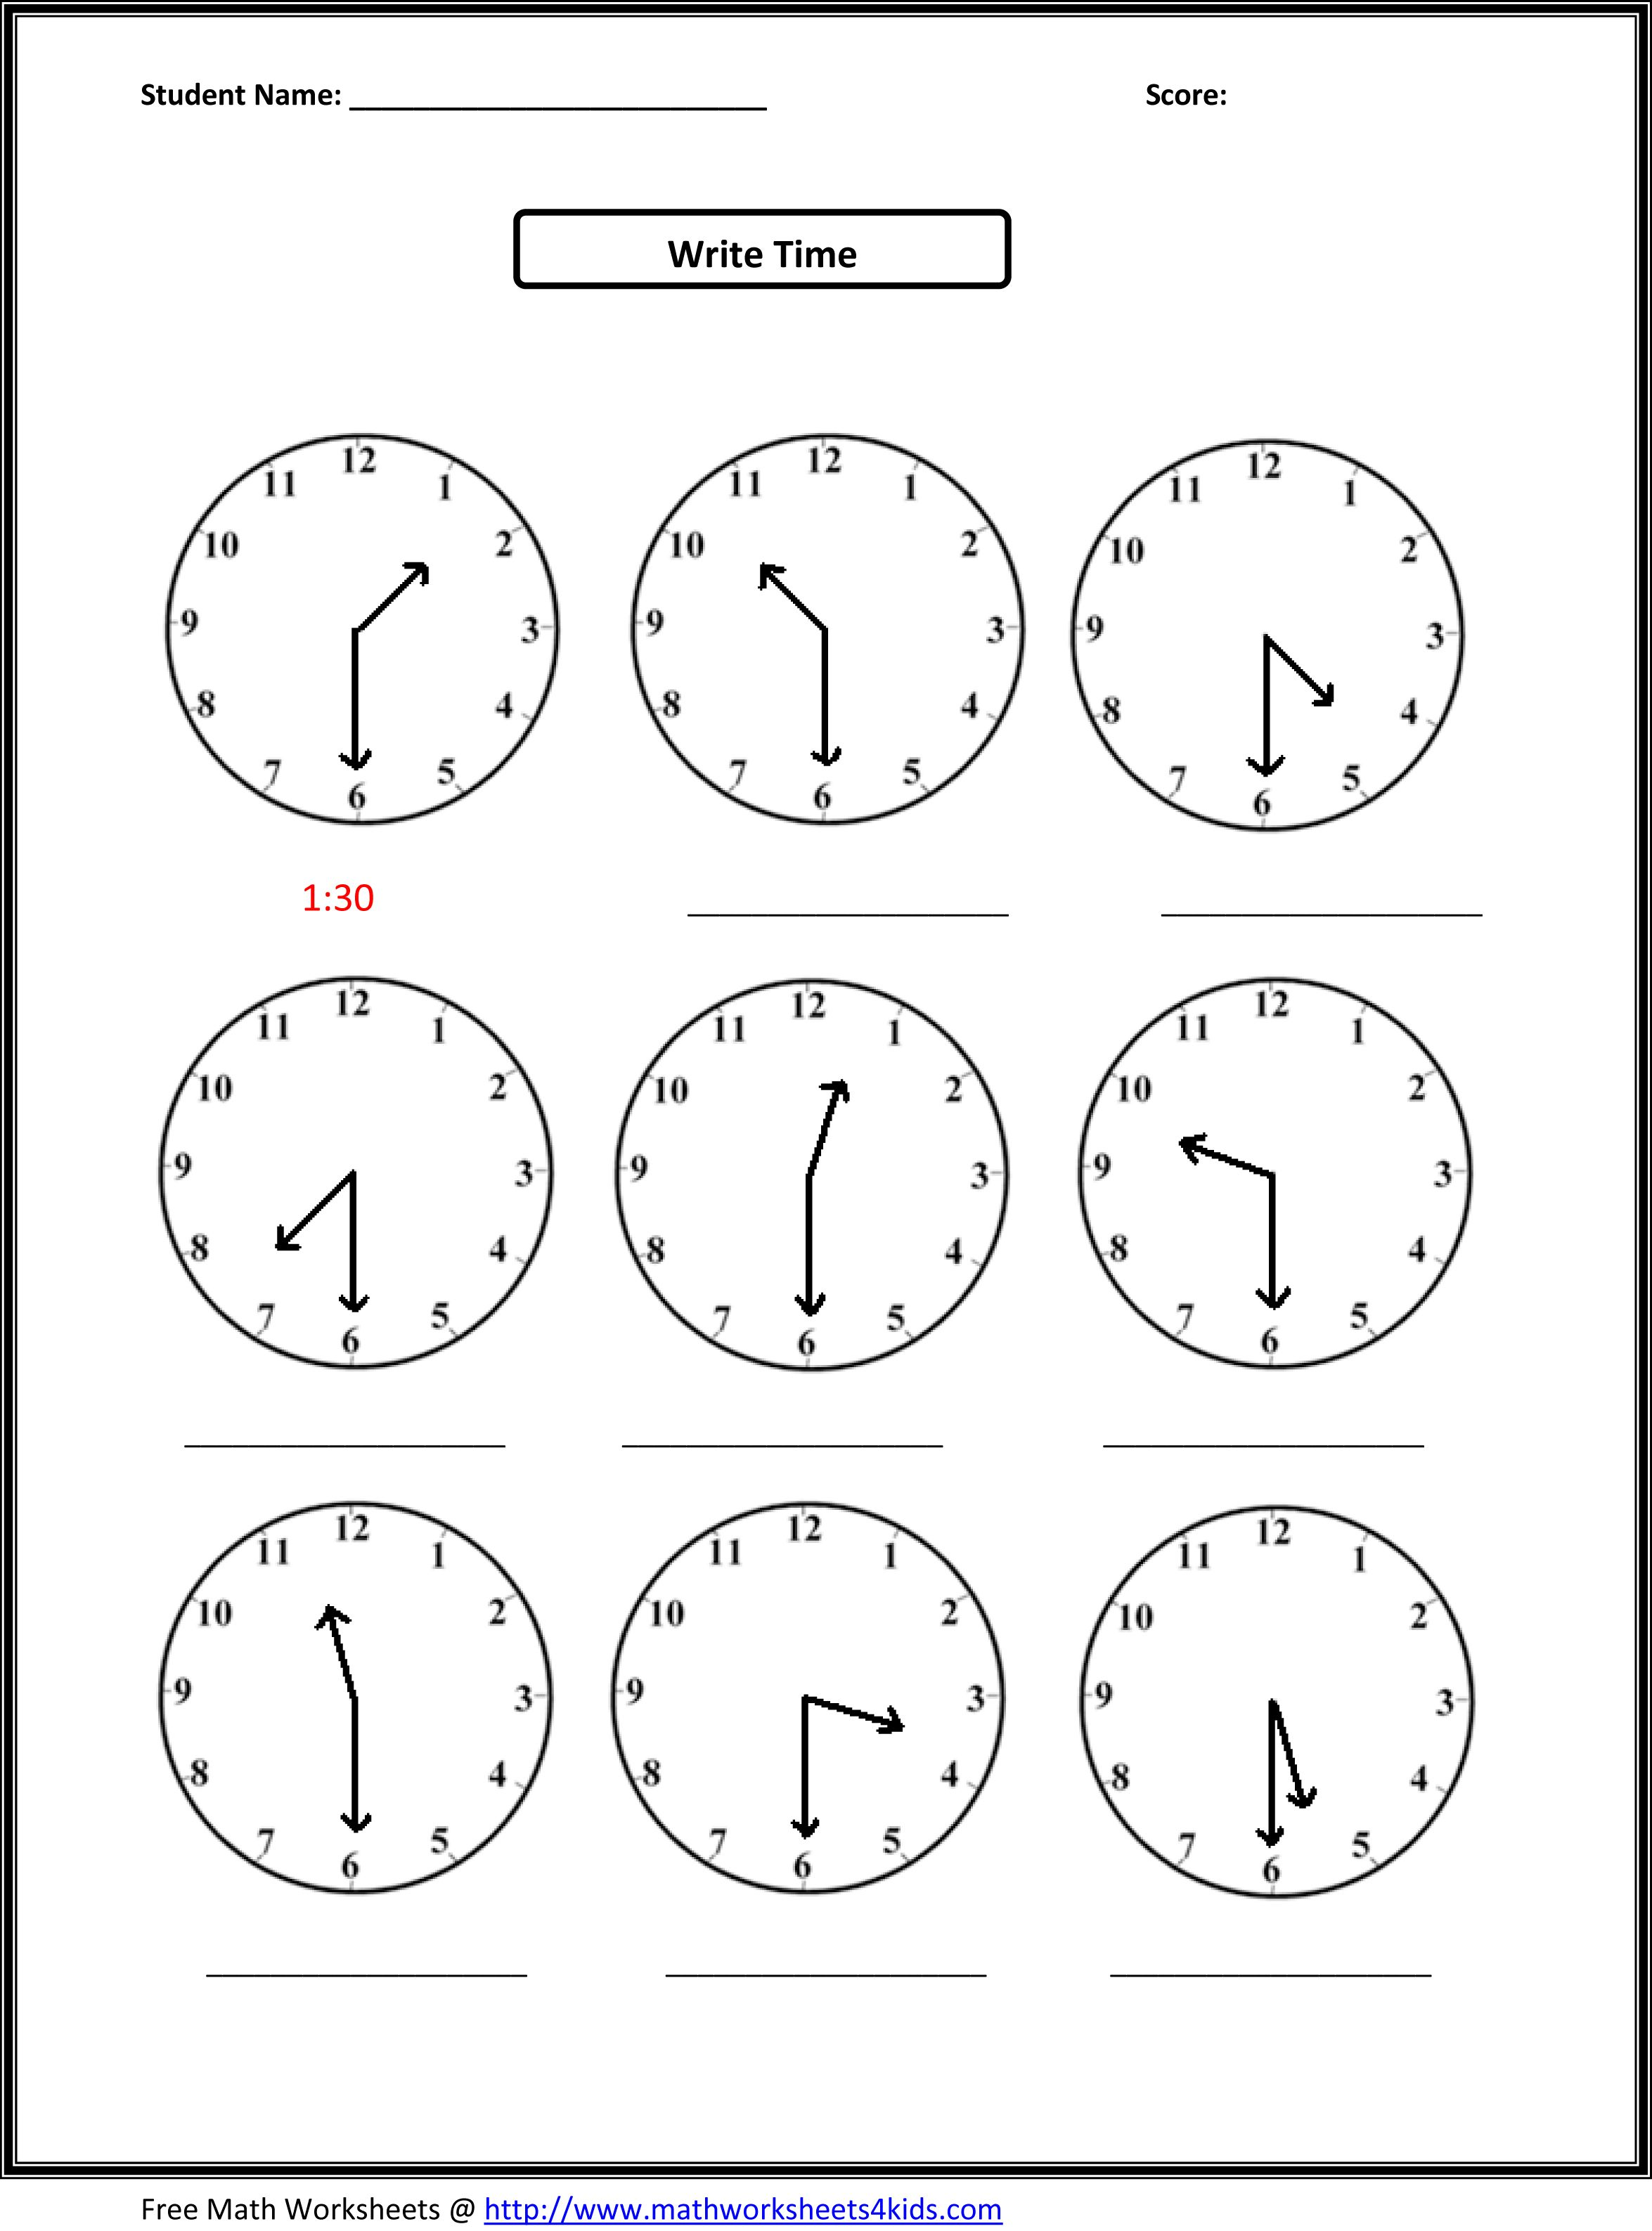 Proatmealus  Outstanding Worksheet On Time For Grade   Reocurent With Licious Free Printable Telling Time Worksheets Nd Grade  Reocurent With Nice Materials Ks Worksheets Also Color Worksheet For Kindergarten In Addition Adjective And Noun Worksheets And Microsoft Excel  Worksheet As Well As Victorian Inventions Worksheet Additionally A To Z Writing Worksheets From Reocurentcom With Proatmealus  Licious Worksheet On Time For Grade   Reocurent With Nice Free Printable Telling Time Worksheets Nd Grade  Reocurent And Outstanding Materials Ks Worksheets Also Color Worksheet For Kindergarten In Addition Adjective And Noun Worksheets From Reocurentcom